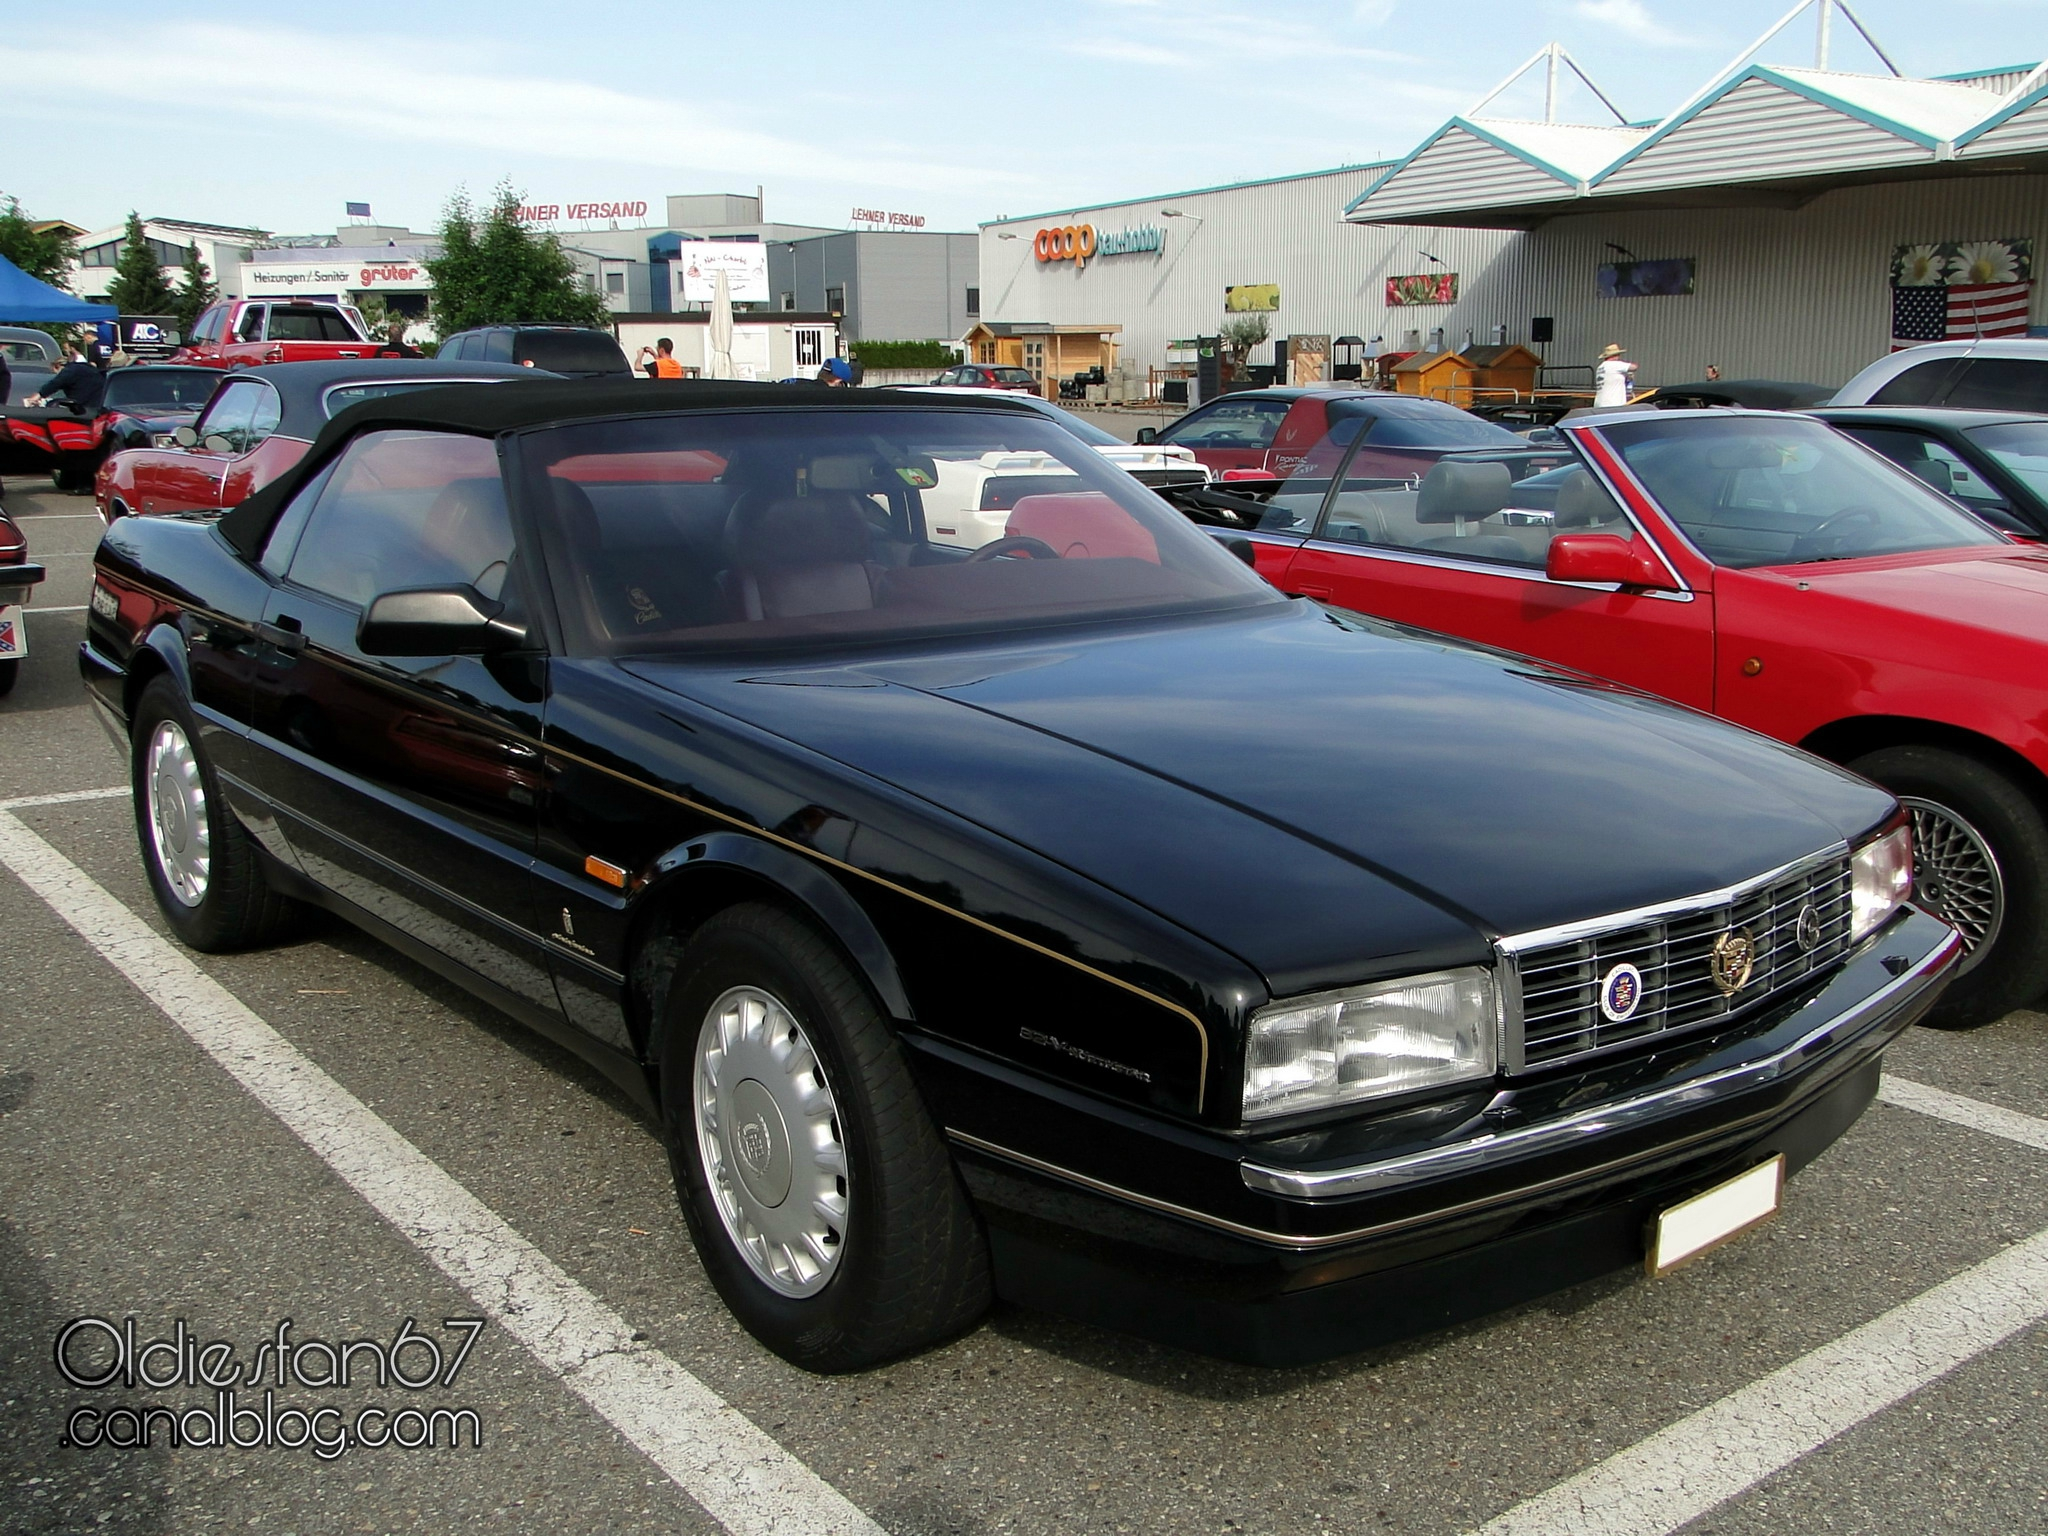 Cadillac Allant 233 Roadster 1987 1993 Oldiesfan67 Quot Mon